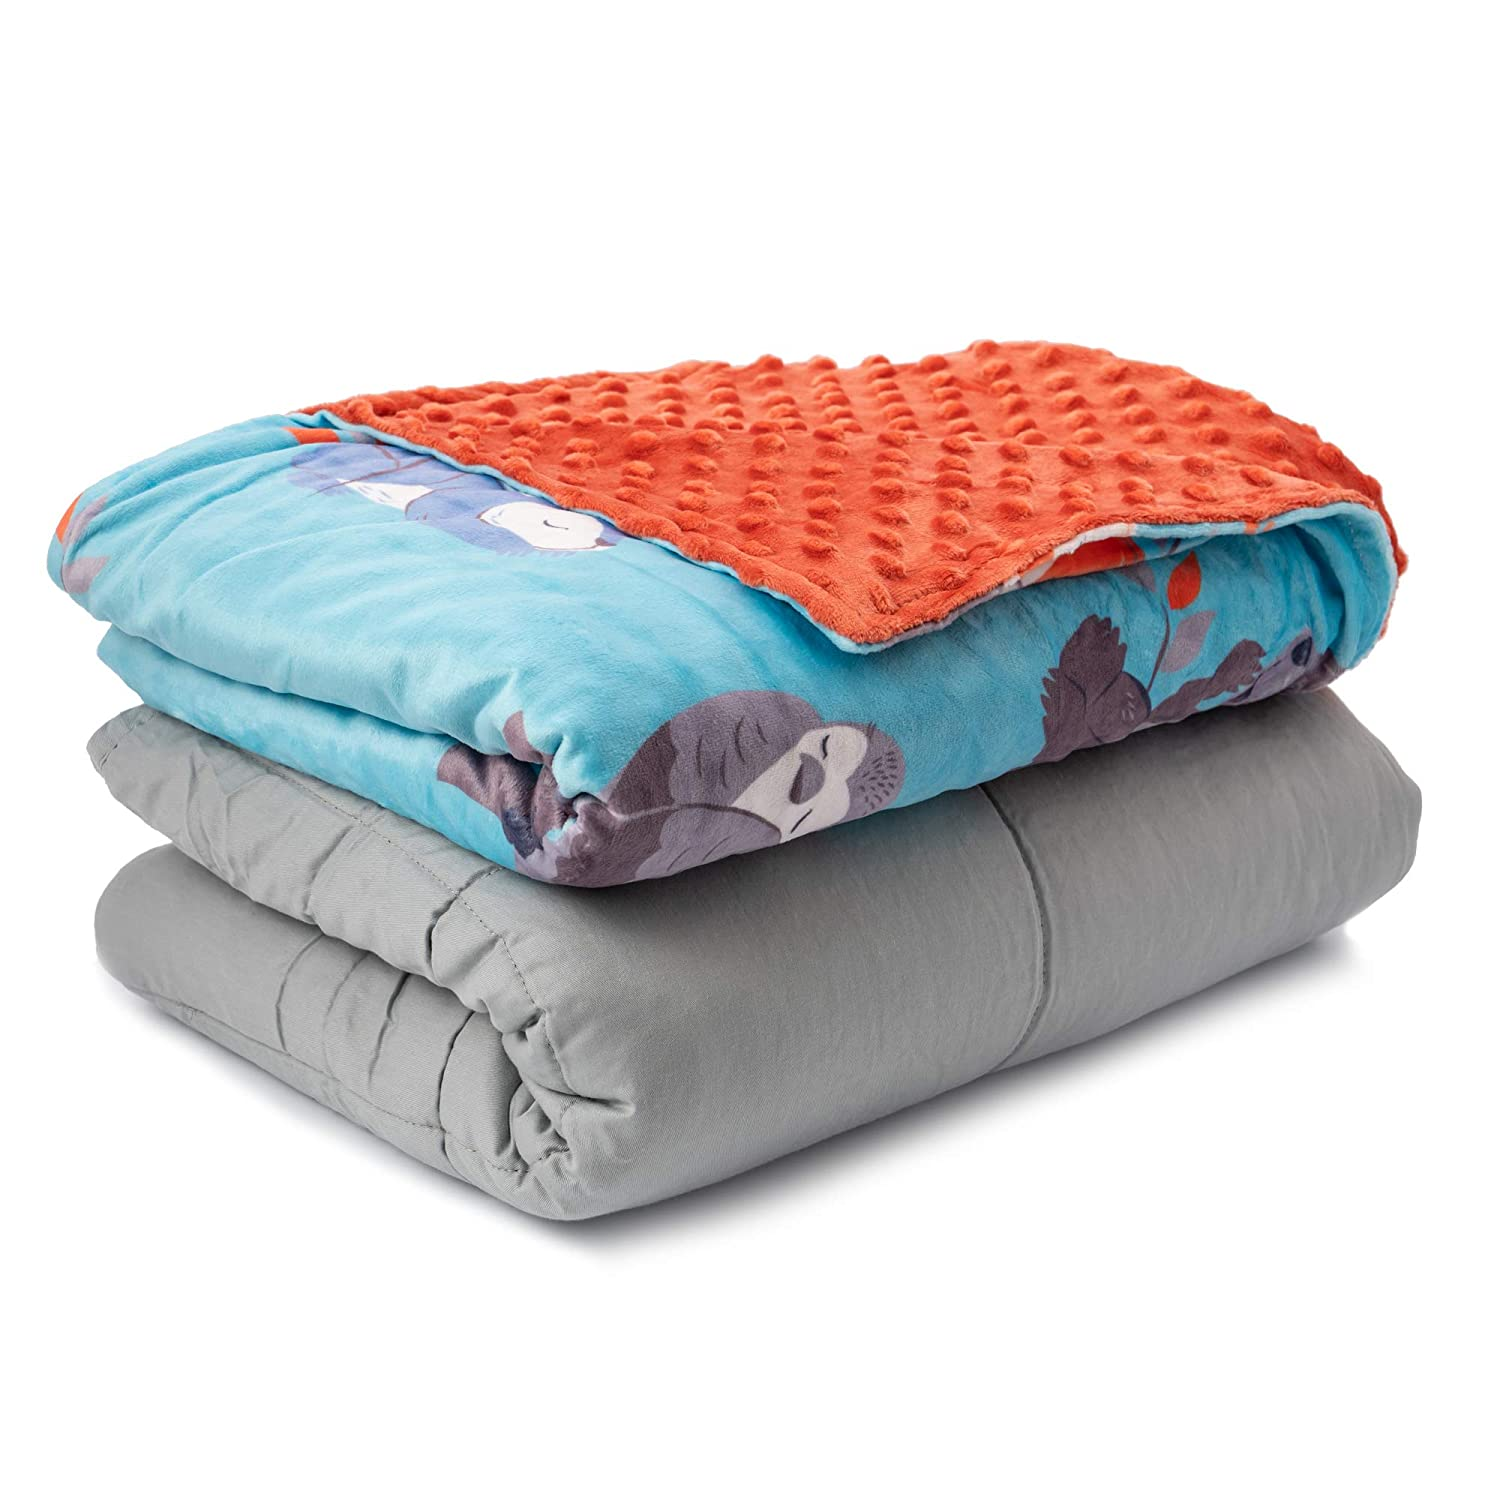 Sweetzer & Orange Weighted Blanket for Kids 7lbs Heavy Blanket, Best for 58-88lb Children